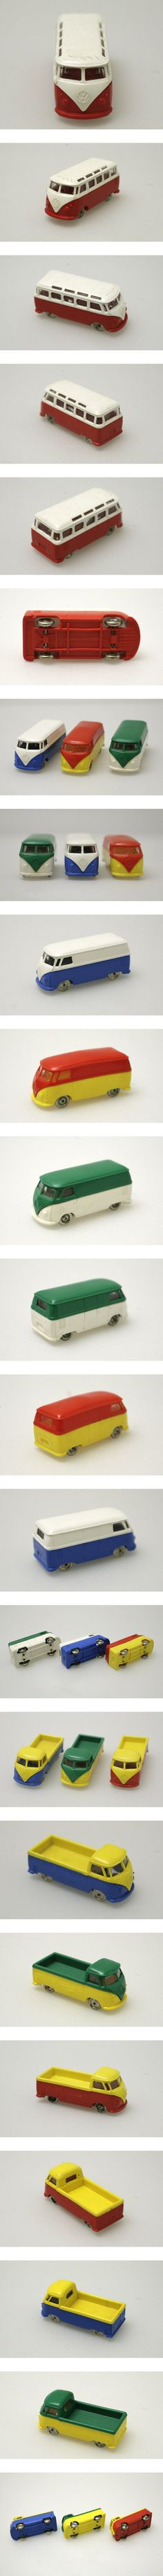 1950's Lego Vintage VW Models 1/87 FOR SALE: AUCTION ON EBAY.DE, NOW!